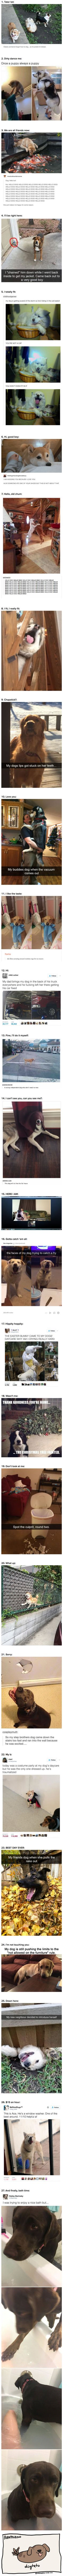 "20+ Hilarious Photos That Will Make You Scream ""I LOVE DOGS!"""